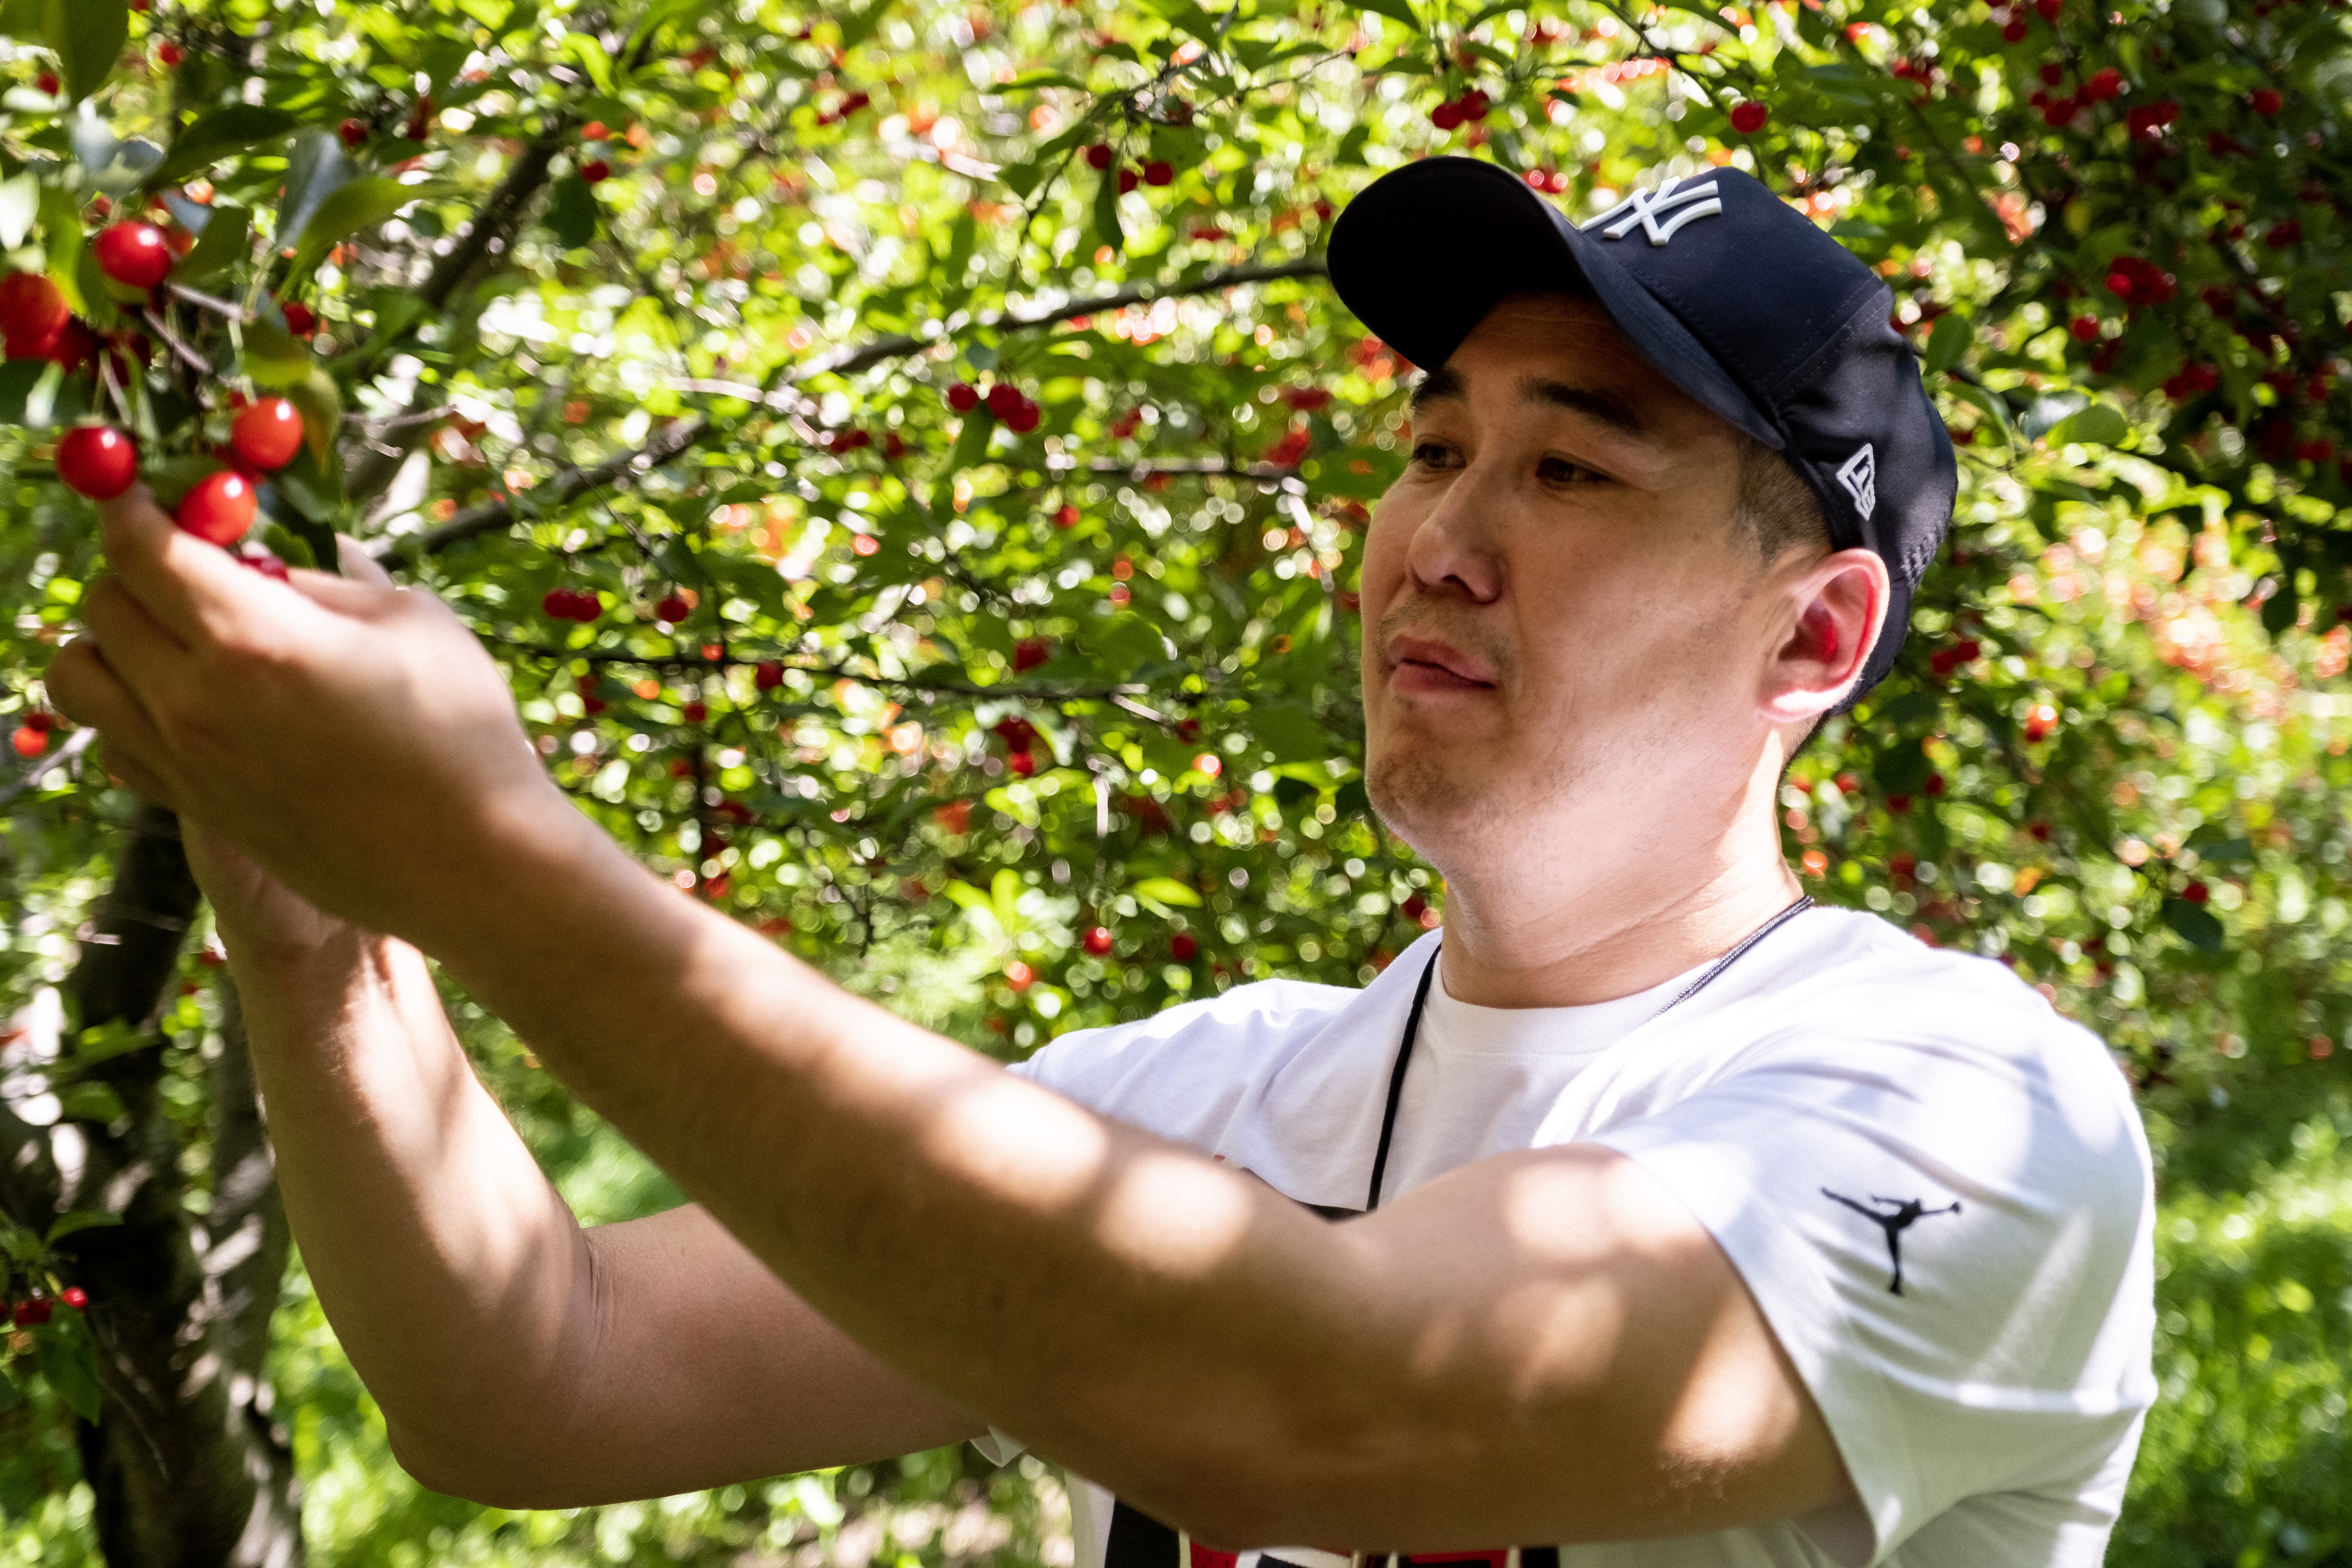 Enkhbaatar Byambaa, a member of the Mongolian delegation visiting BYU as part of an ongoing partnership to improve food preservation systems in Mongolia, picks cherries from a fruit farm in Utah during the delegation's visit in August 2019.